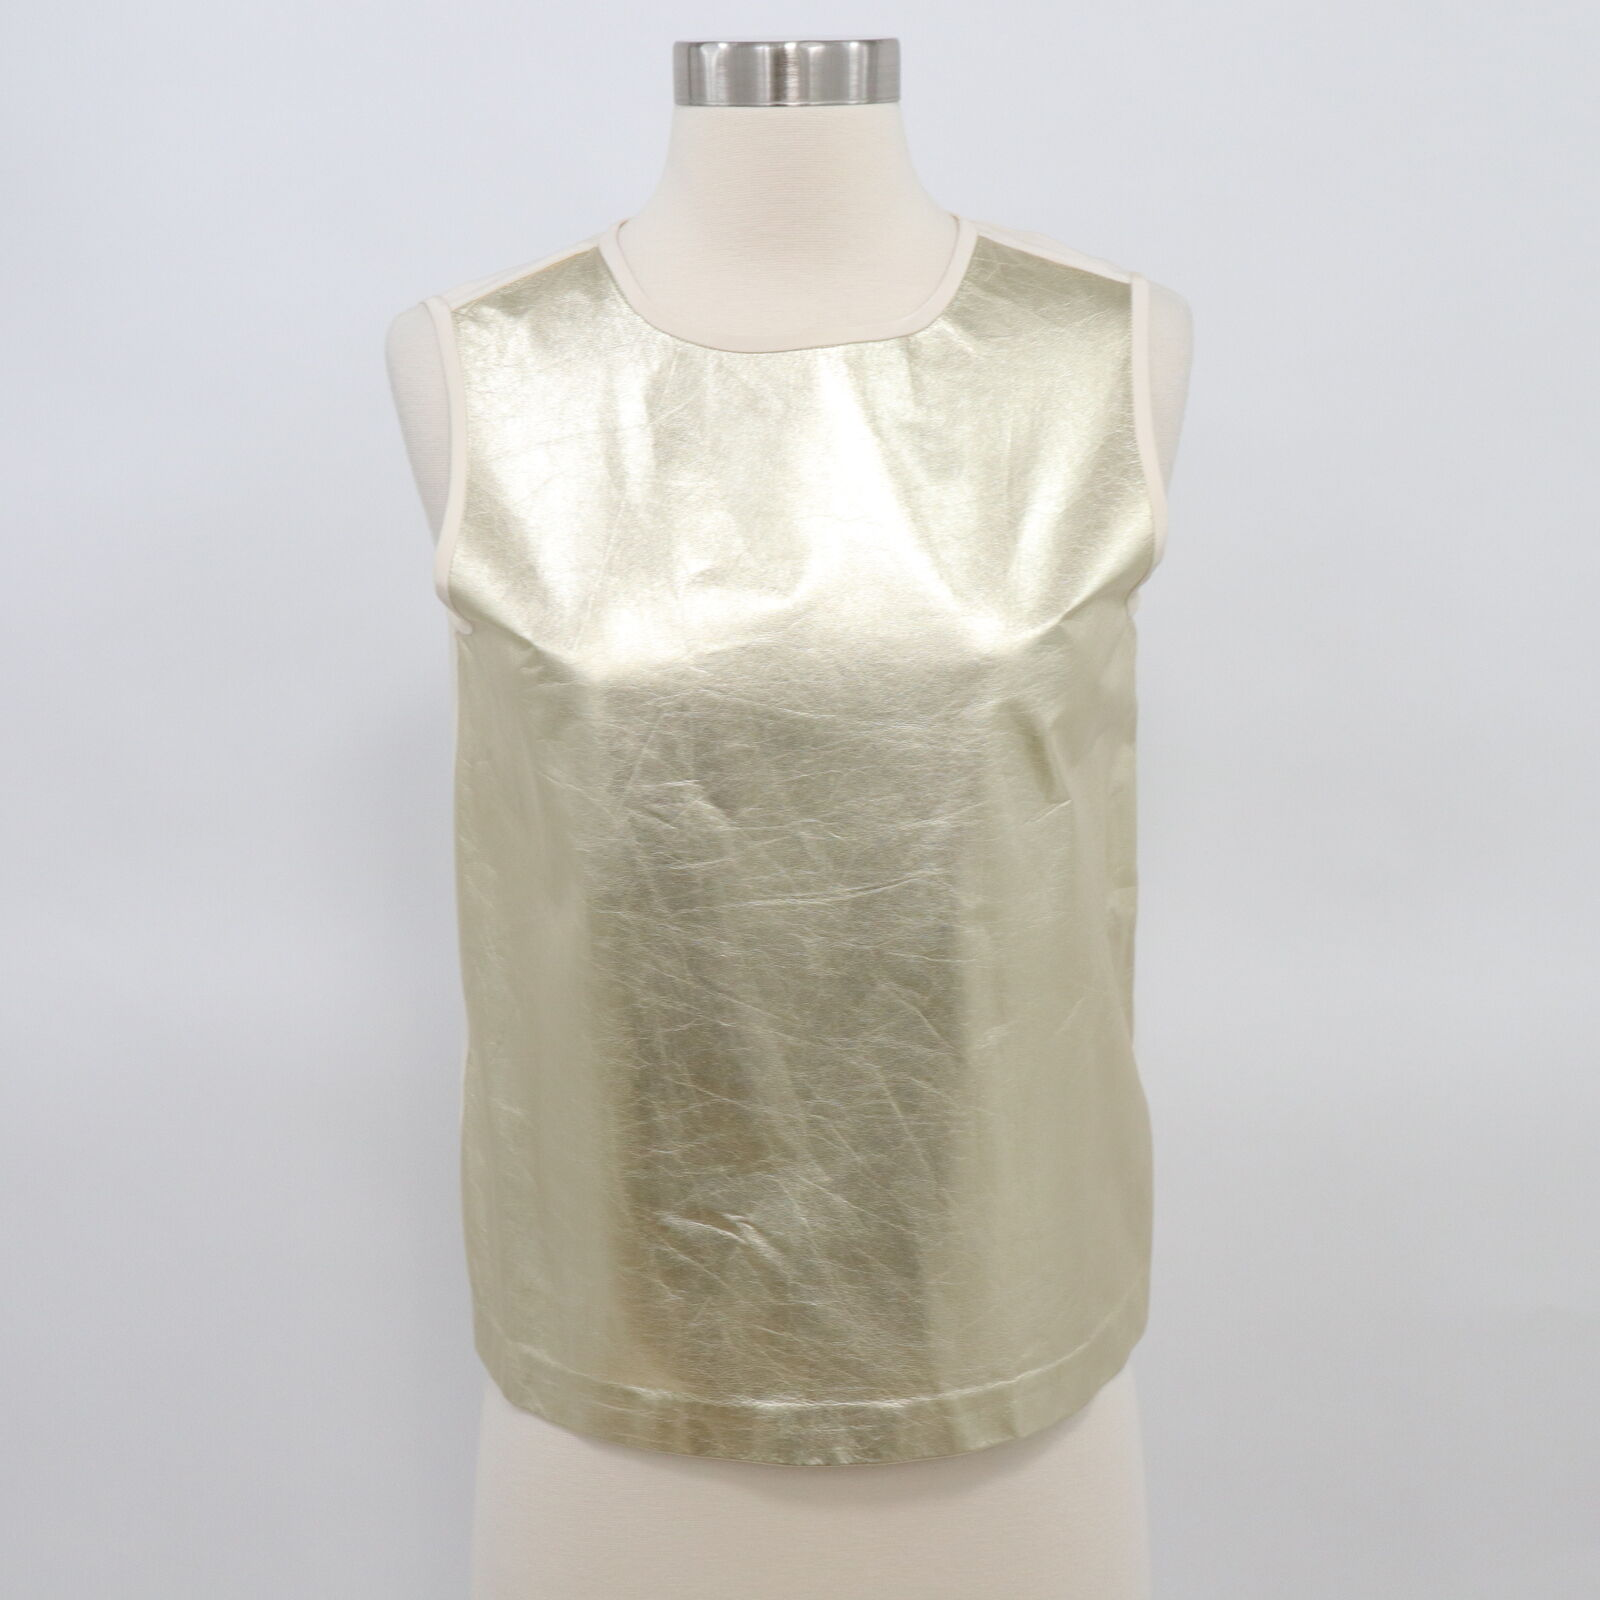 Raoul Leather Tank oben Shell Hemd daMänner Gold Ivory Silk US6 FR36 Metallic